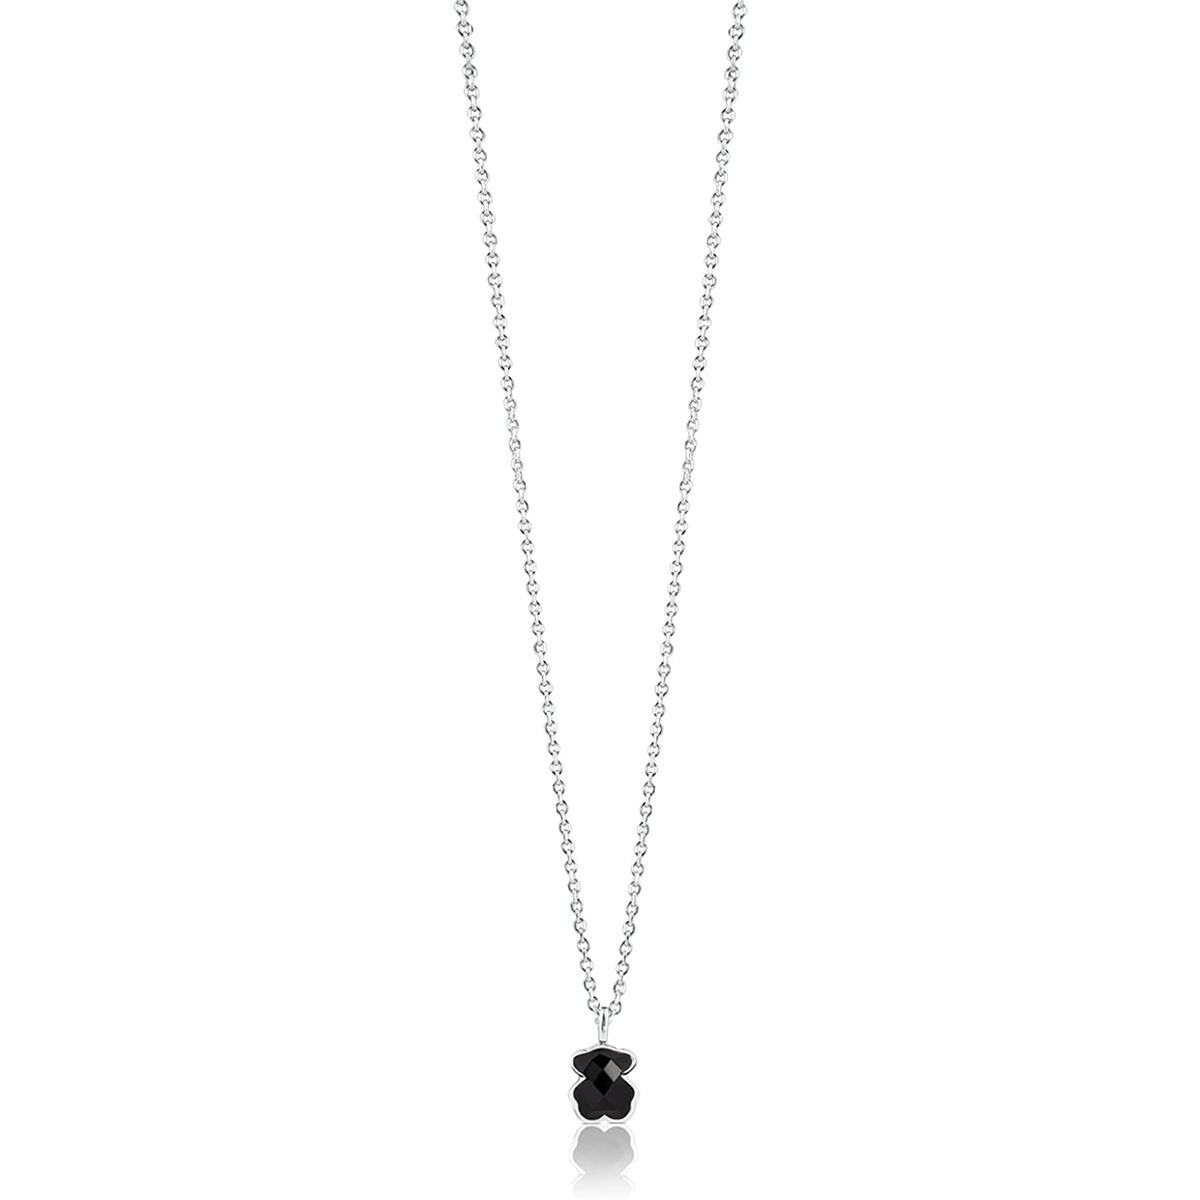 TOUS Jewelry Icon Black and White Sterling Silver with Mini Bear Pendant Necklace